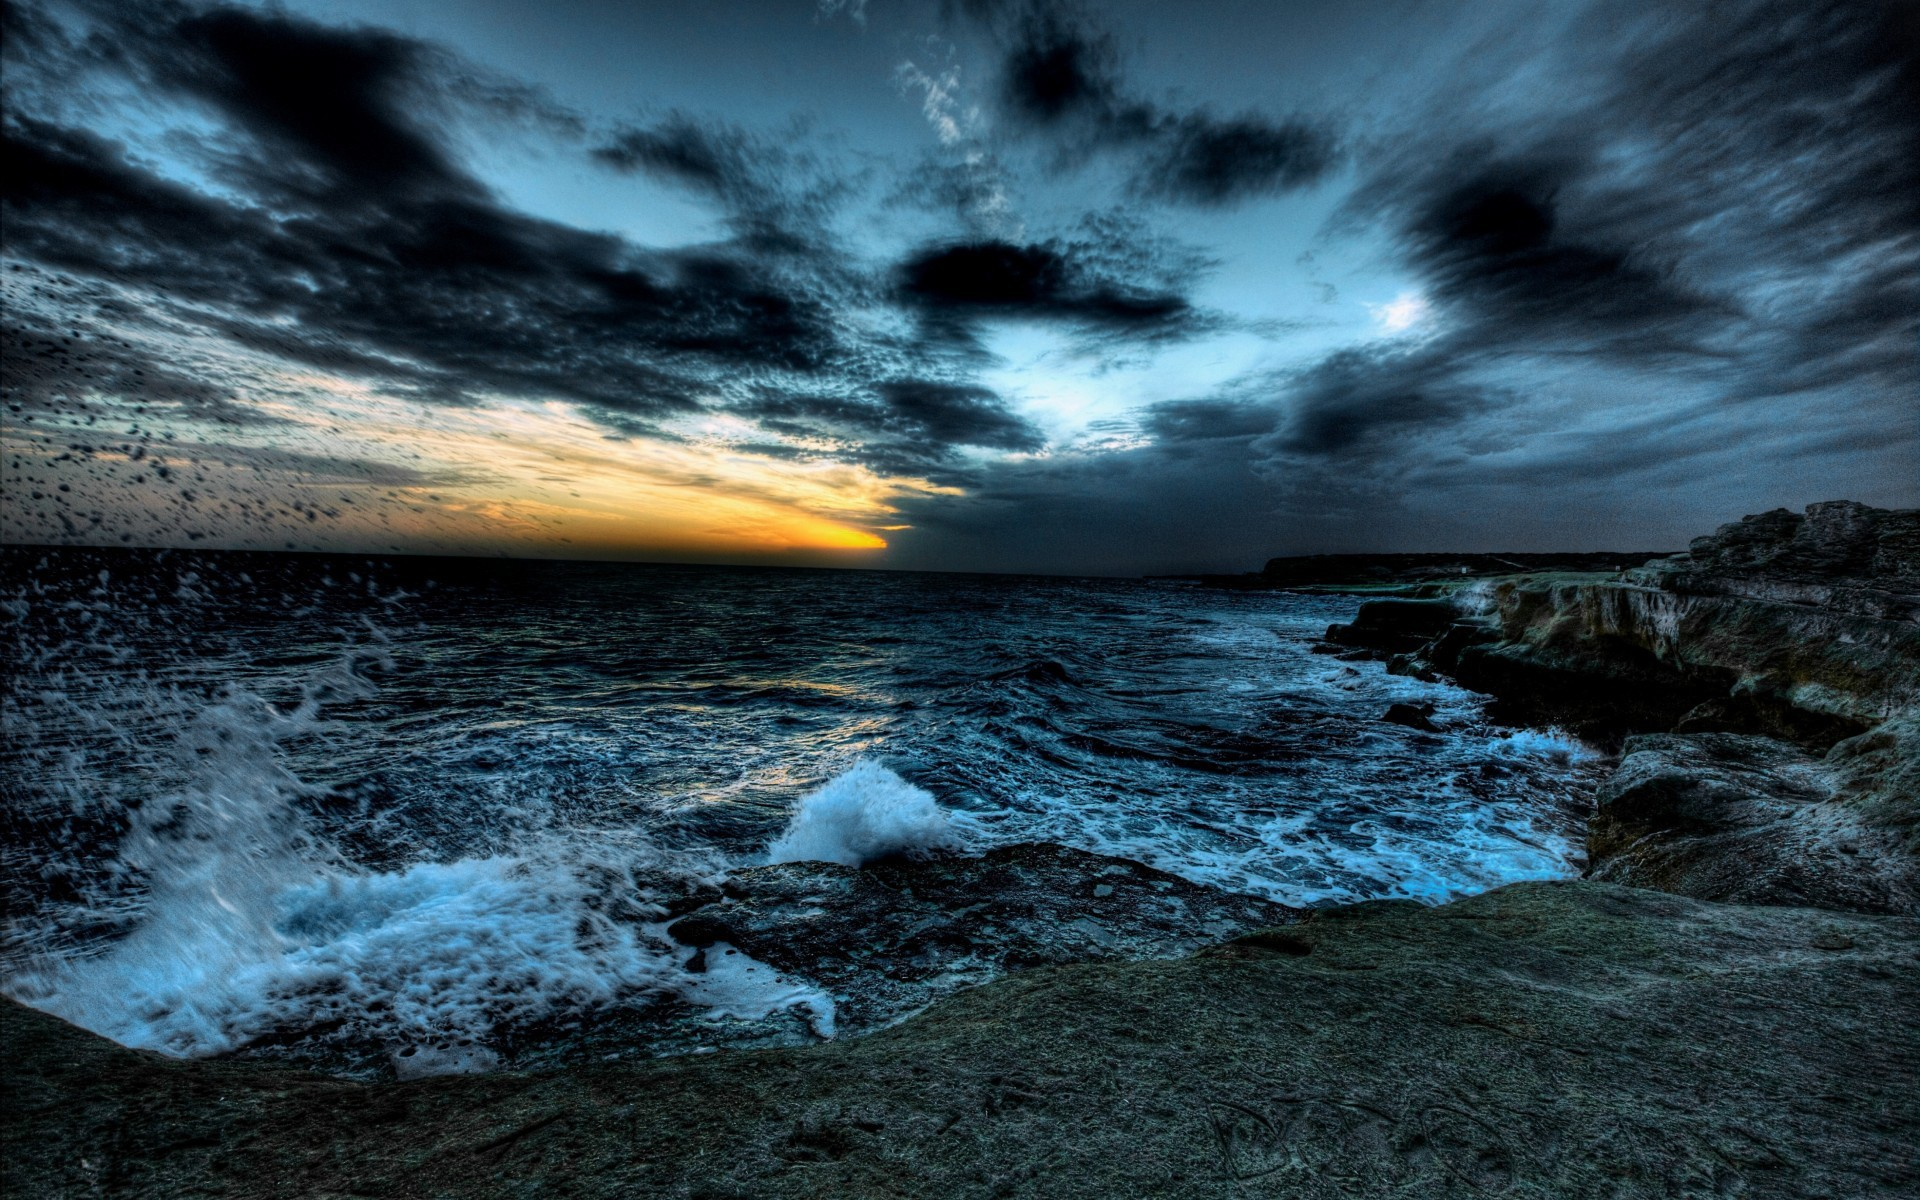 Ocean Storm Wallpapers with High Resolution Wallpaper px 681.67 KB